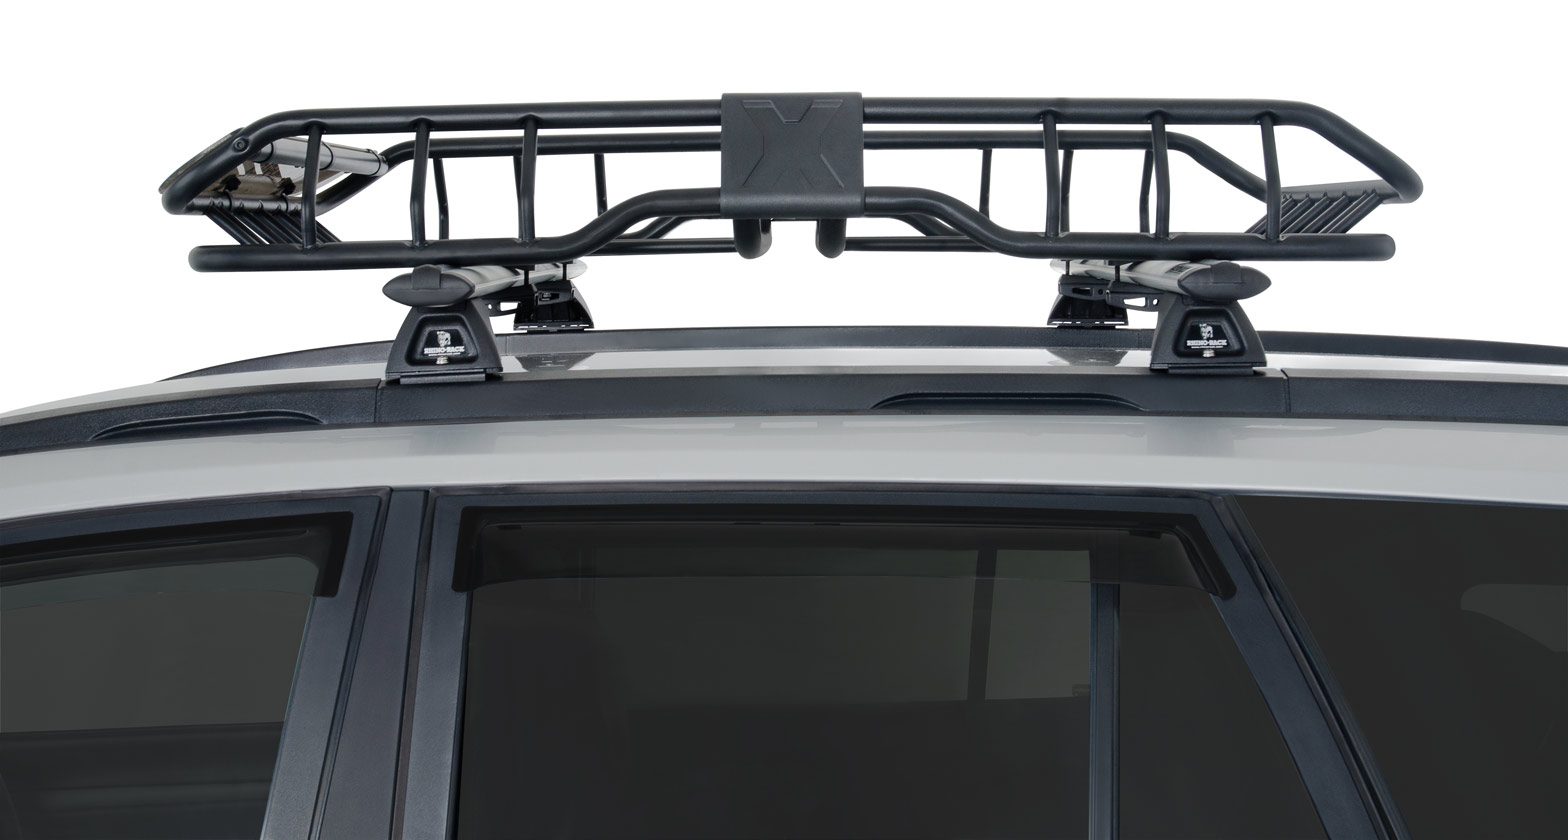 Rmcb01 Xtray Small Rhino Rack